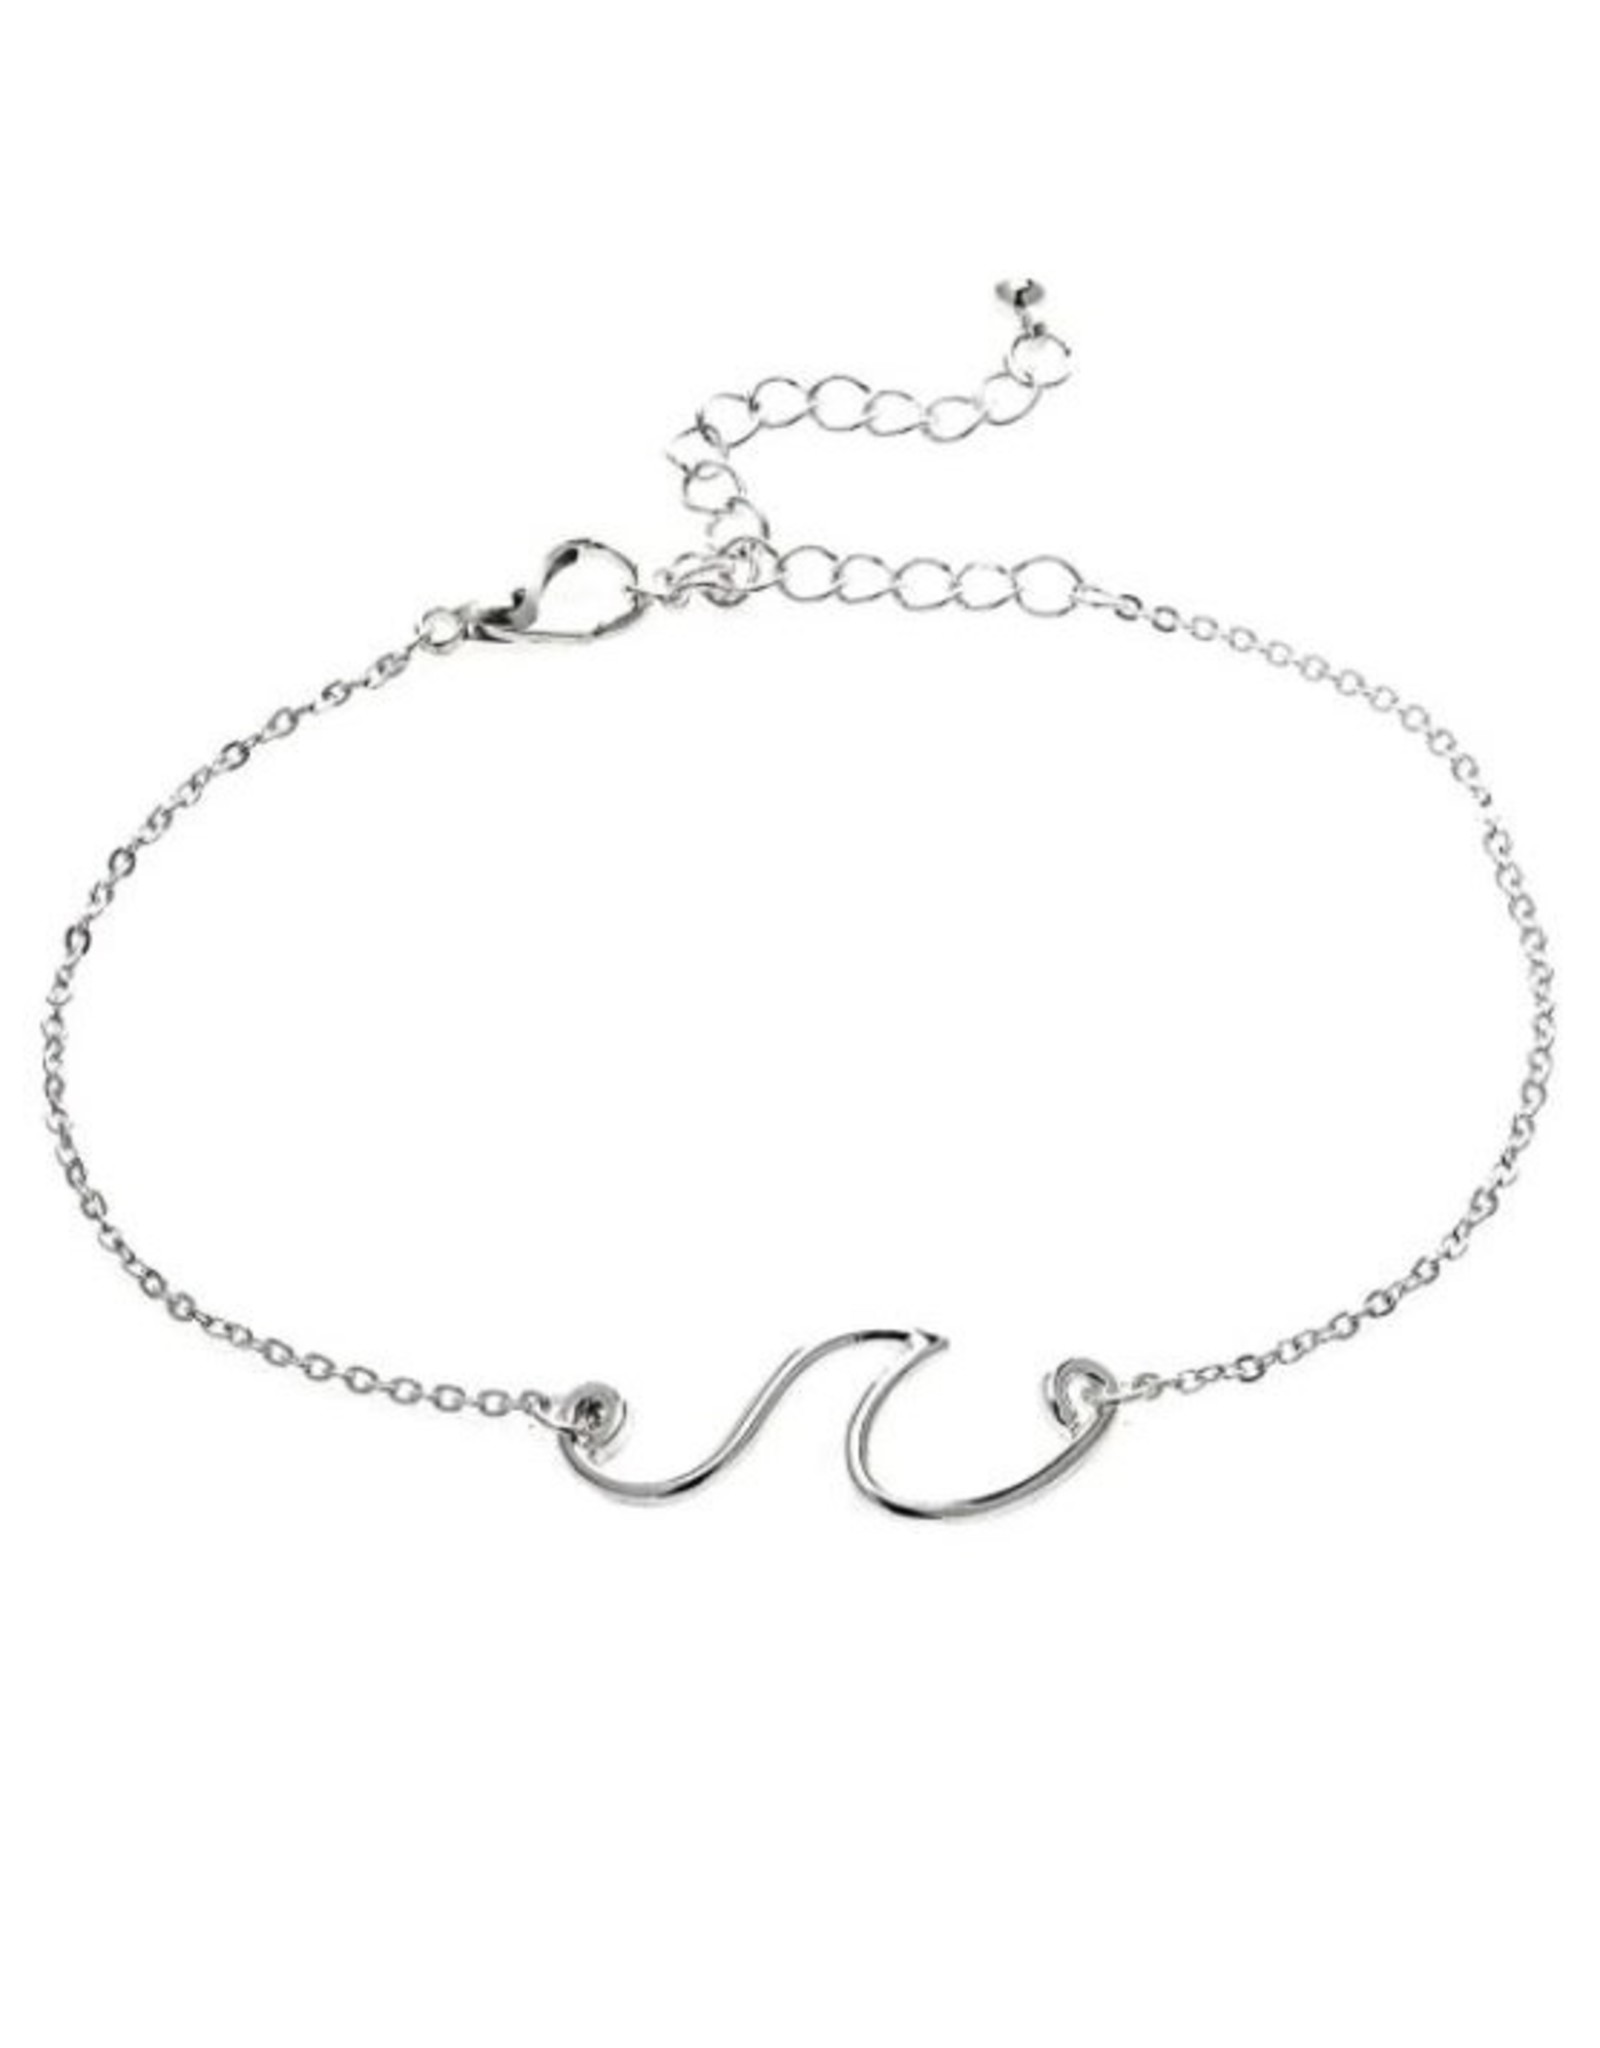 Rain Jewelry WAVE CHAIN SILVER ANKLET